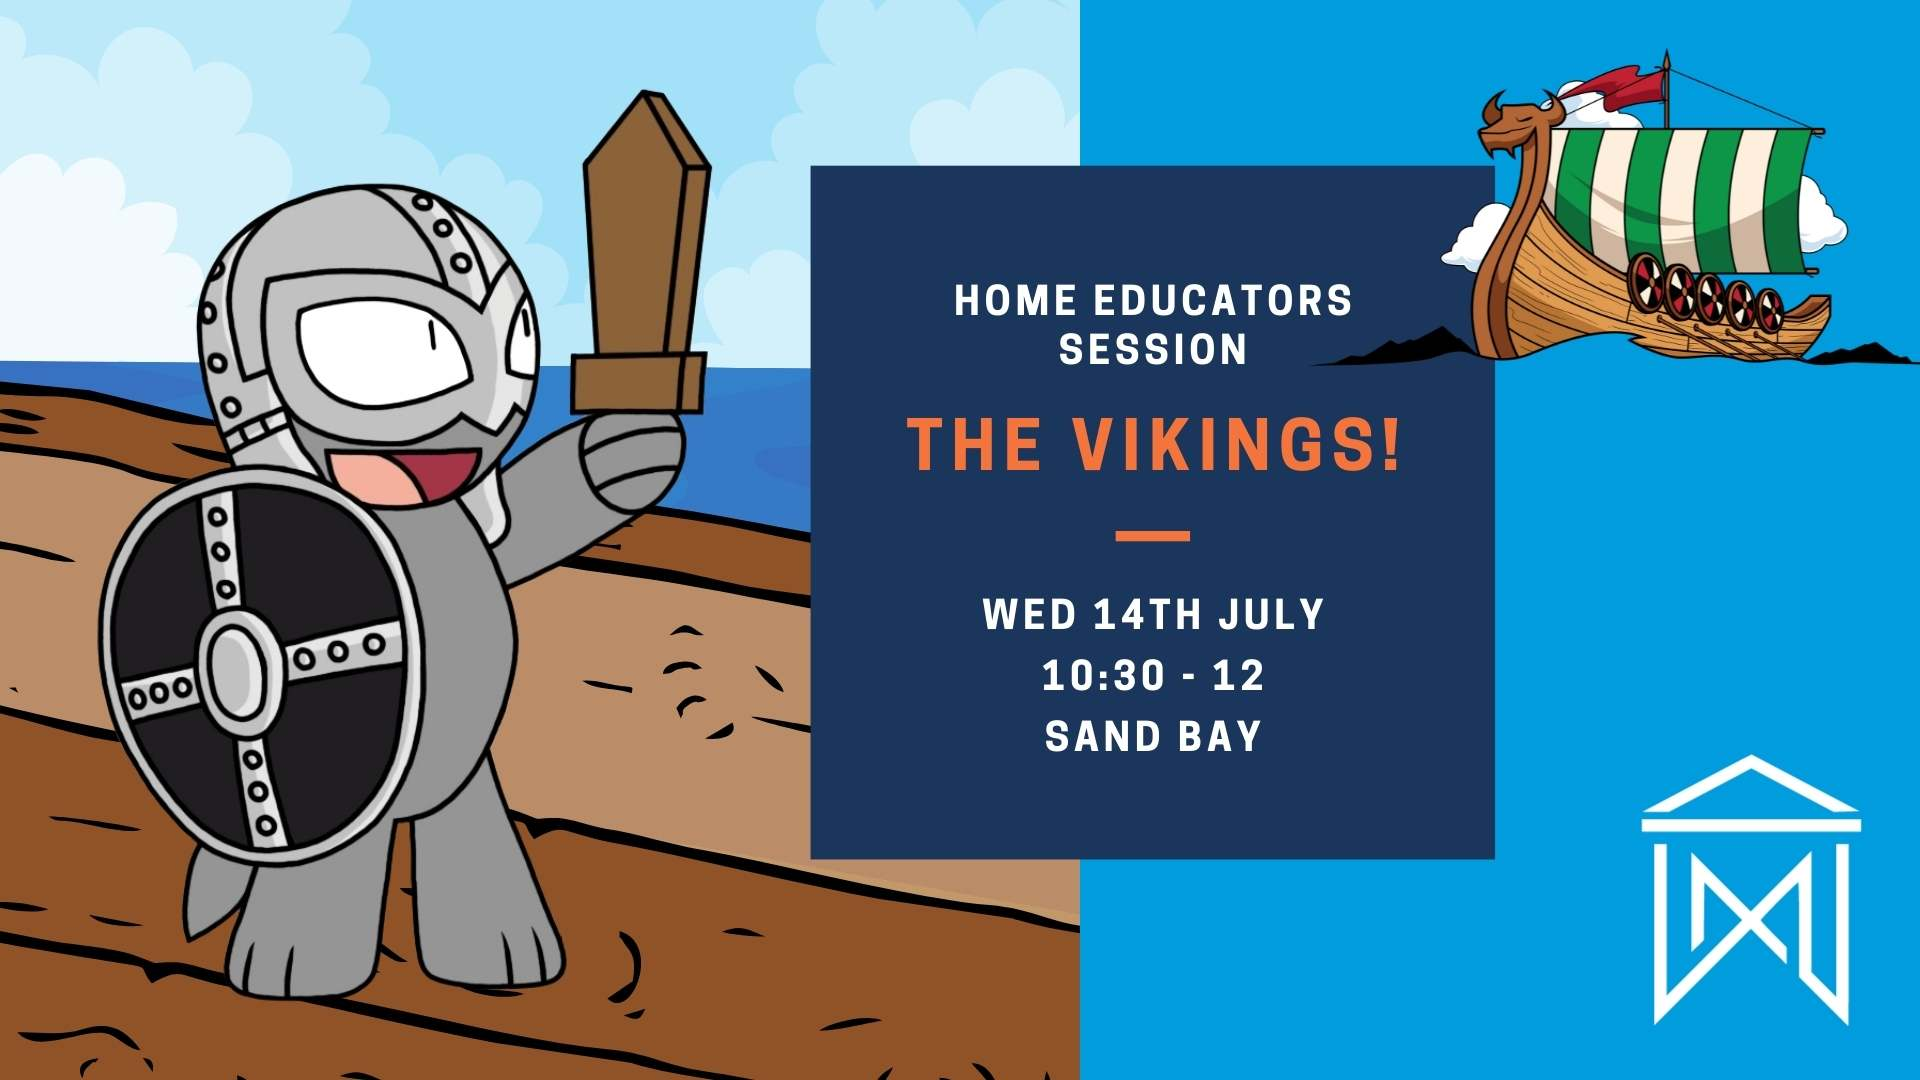 Rusty the Dog Viking Event poster